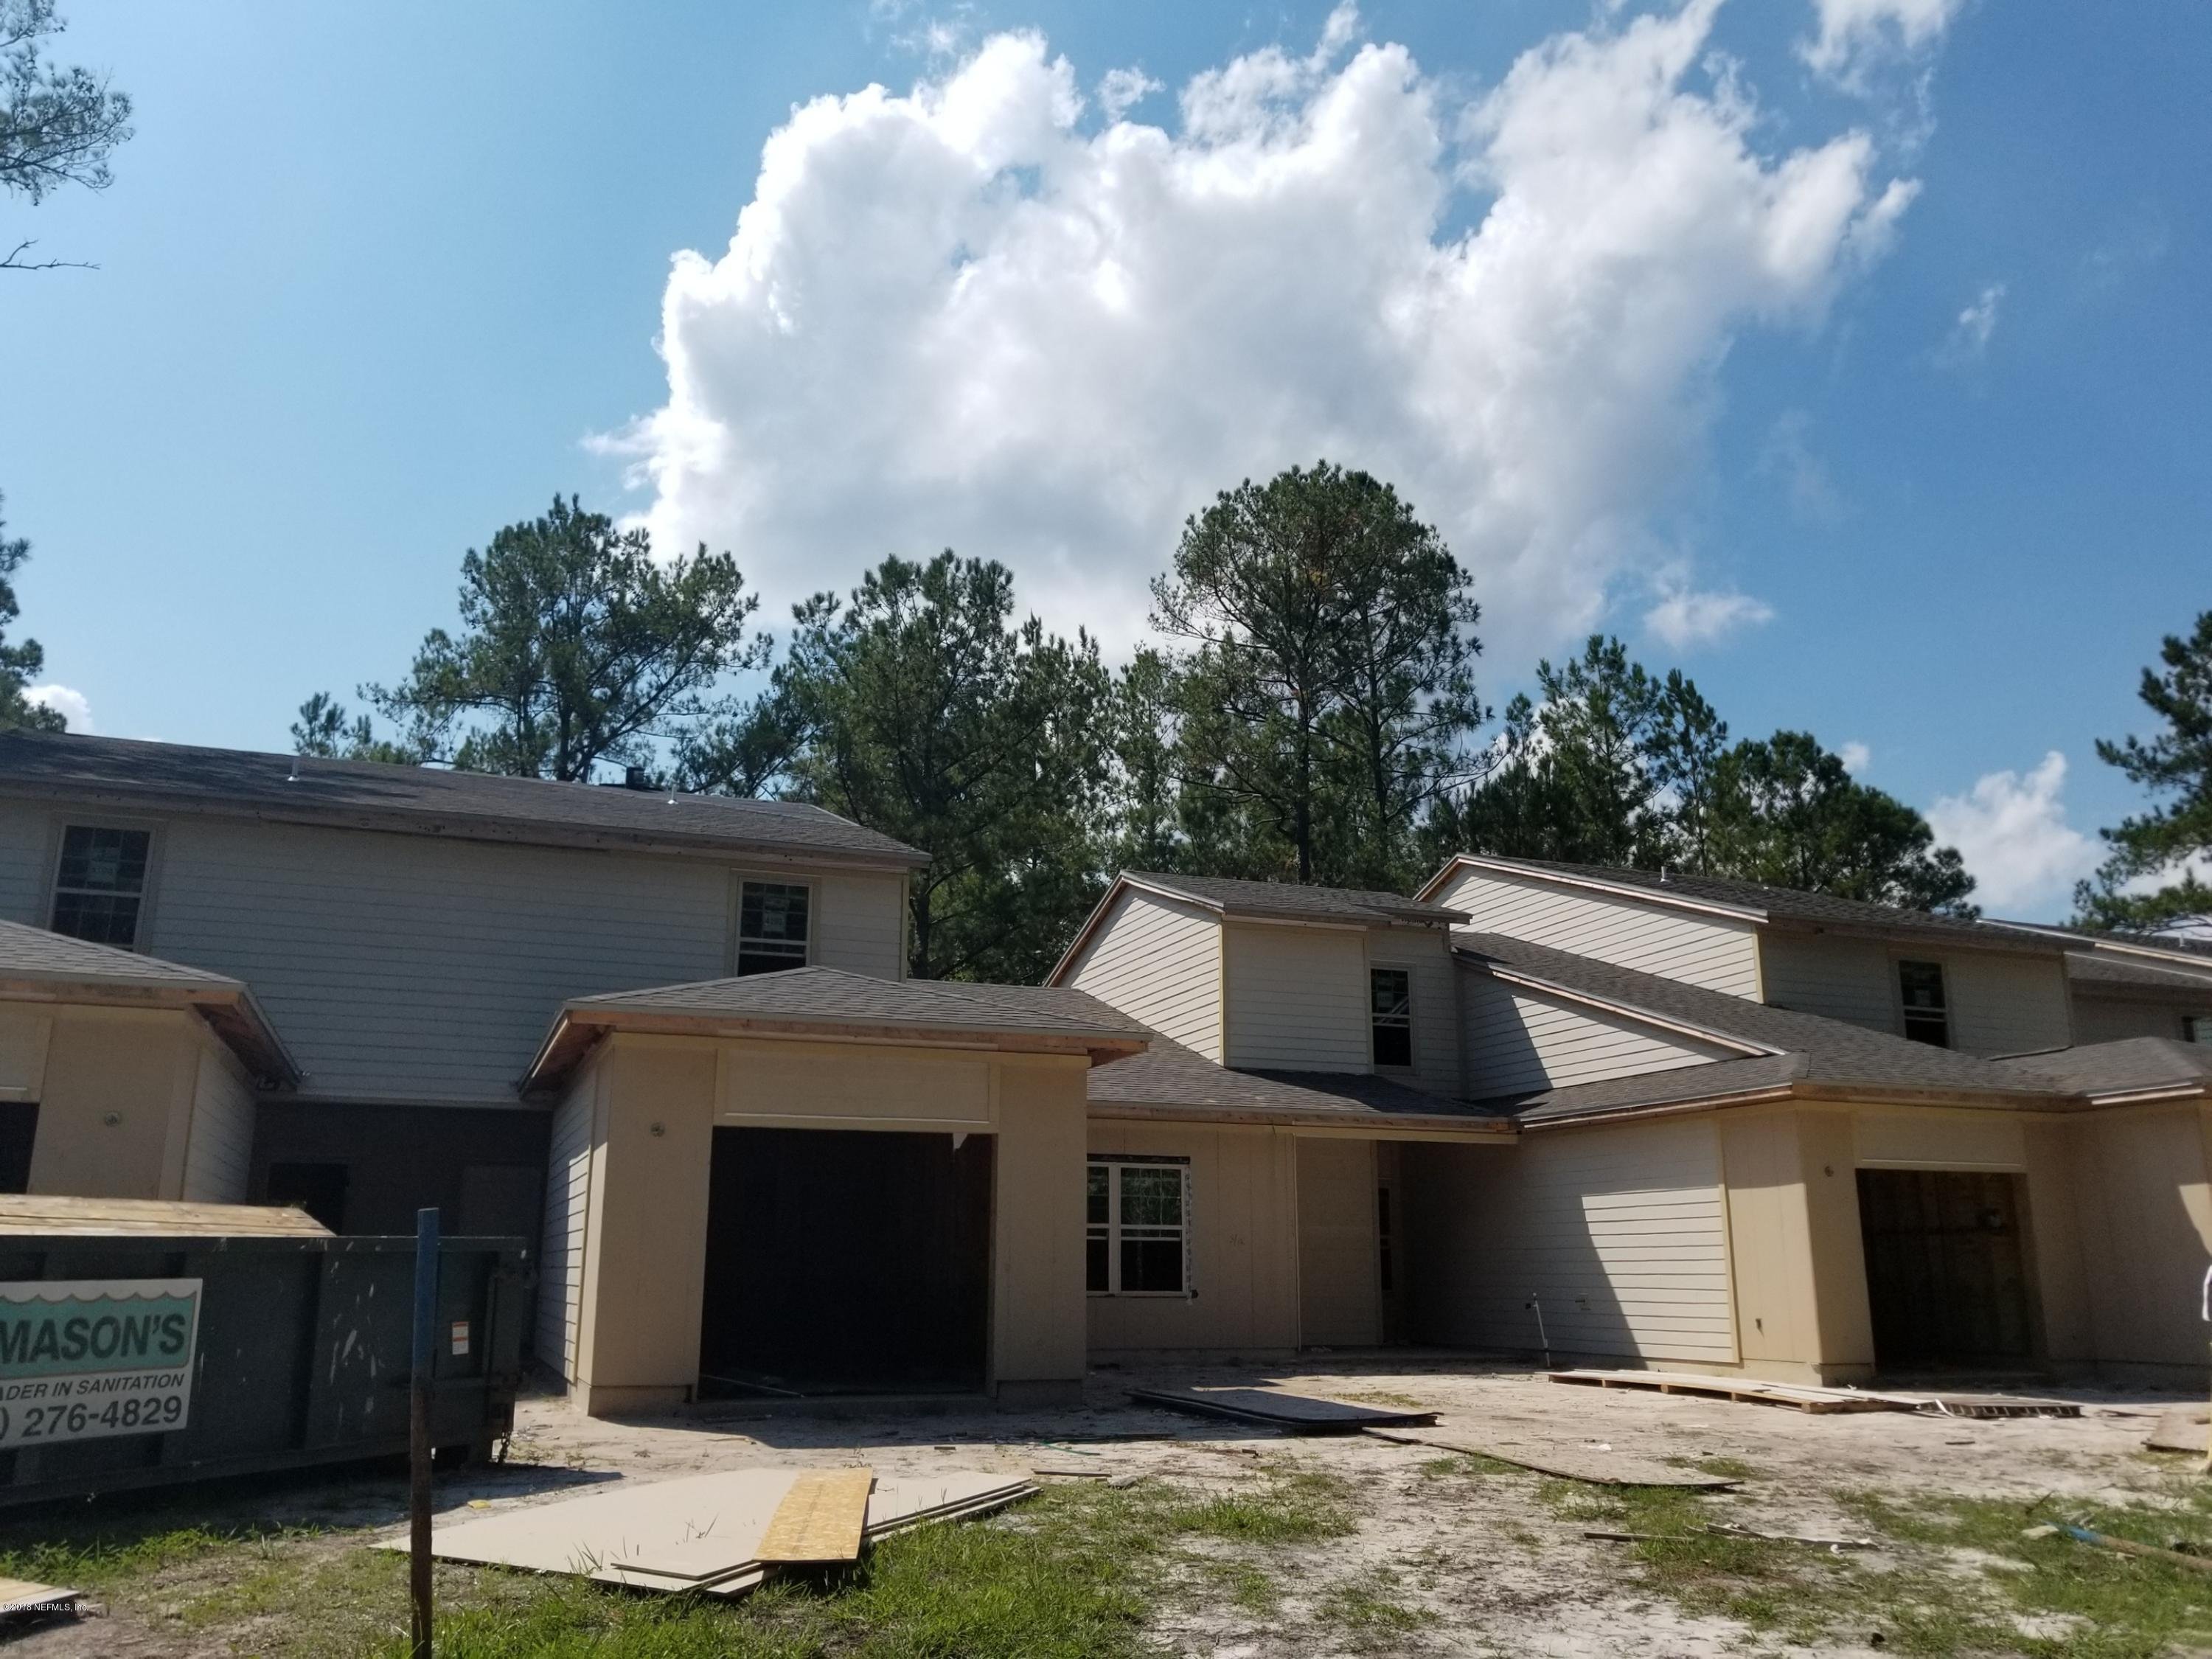 4184 QUIET CREEK, MIDDLEBURG, FLORIDA 32068, 3 Bedrooms Bedrooms, ,2 BathroomsBathrooms,Residential - condos/townhomes,For sale,QUIET CREEK,845497